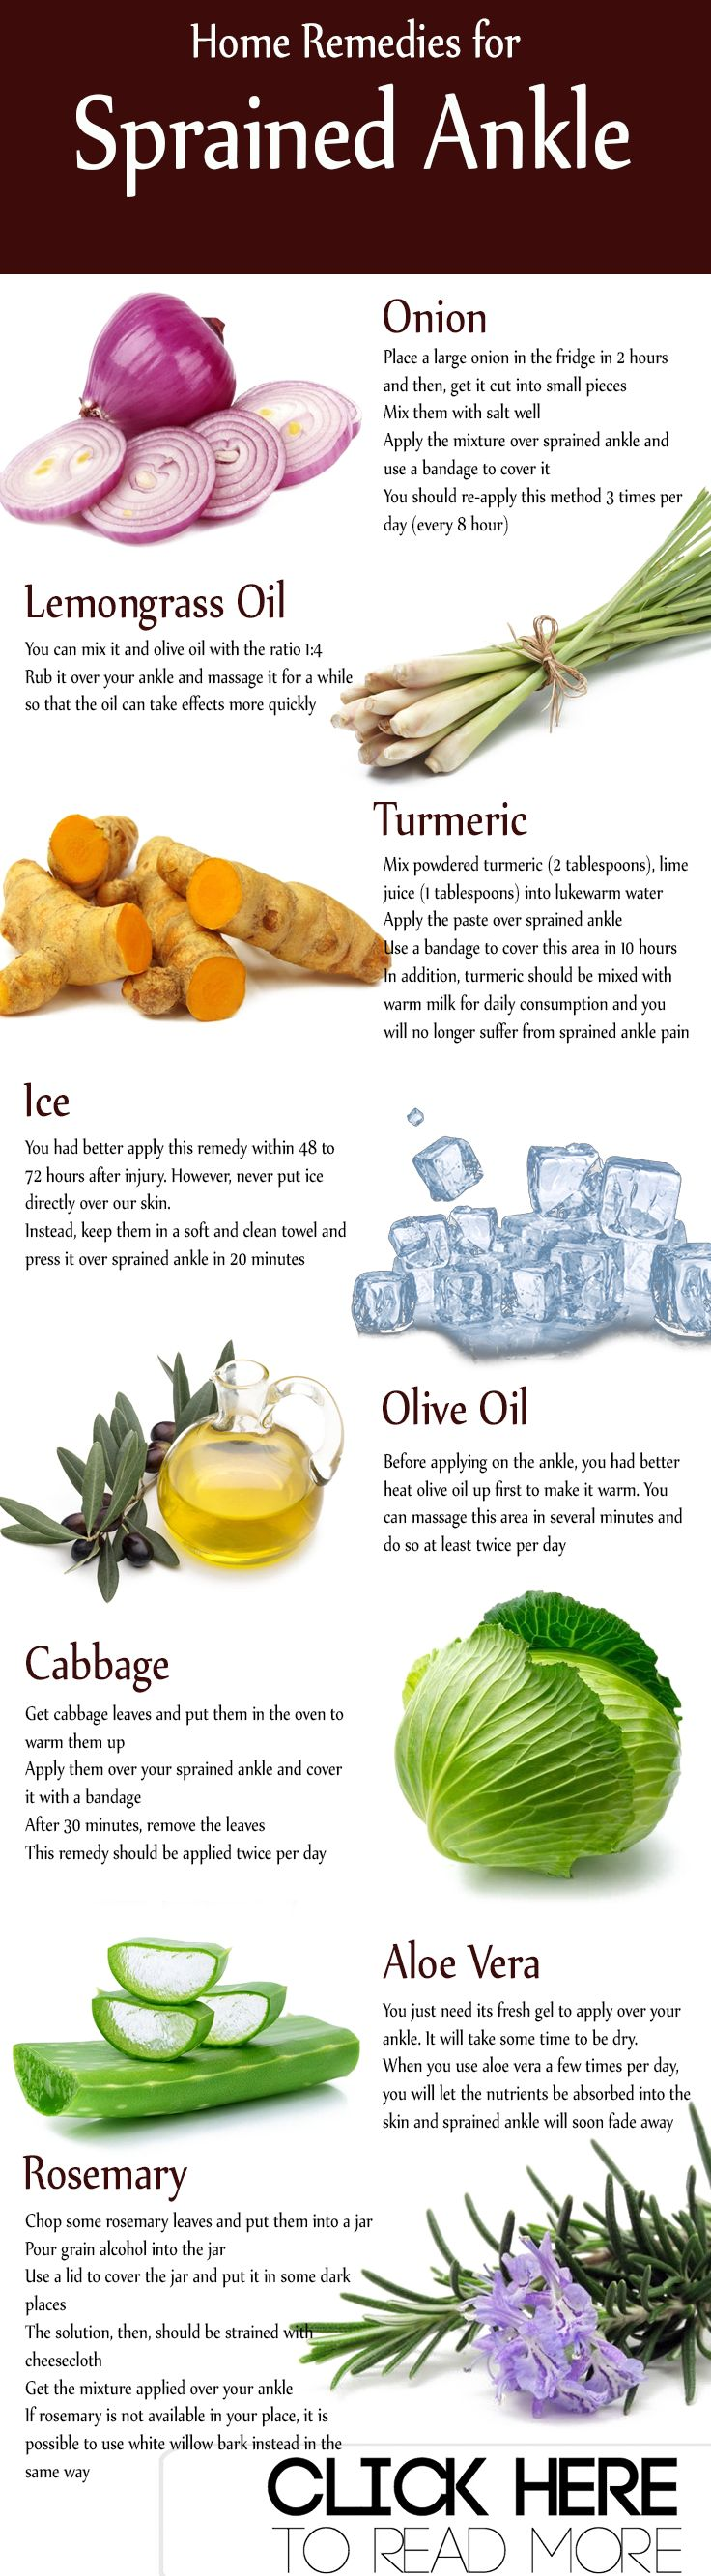 Top 15 Natural Home Remedies for Sprained Ankle. Wonder if they work.